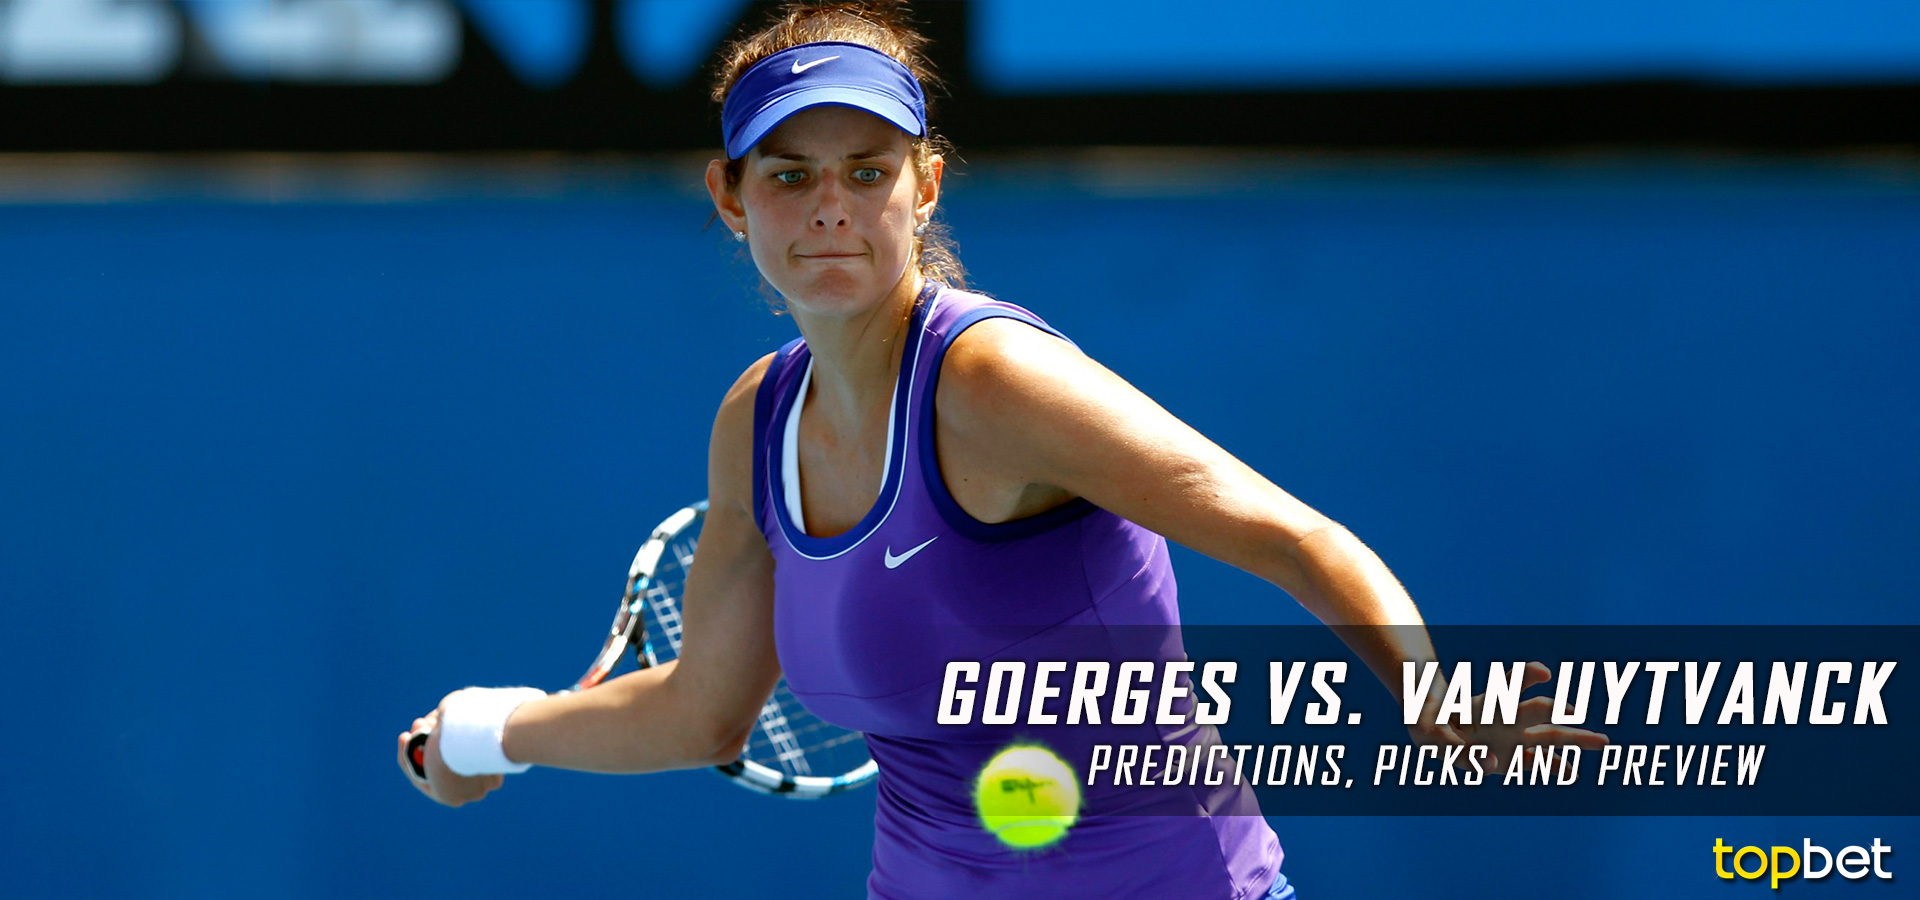 goerges vs van uytvanck 2017 citi open predictions picks